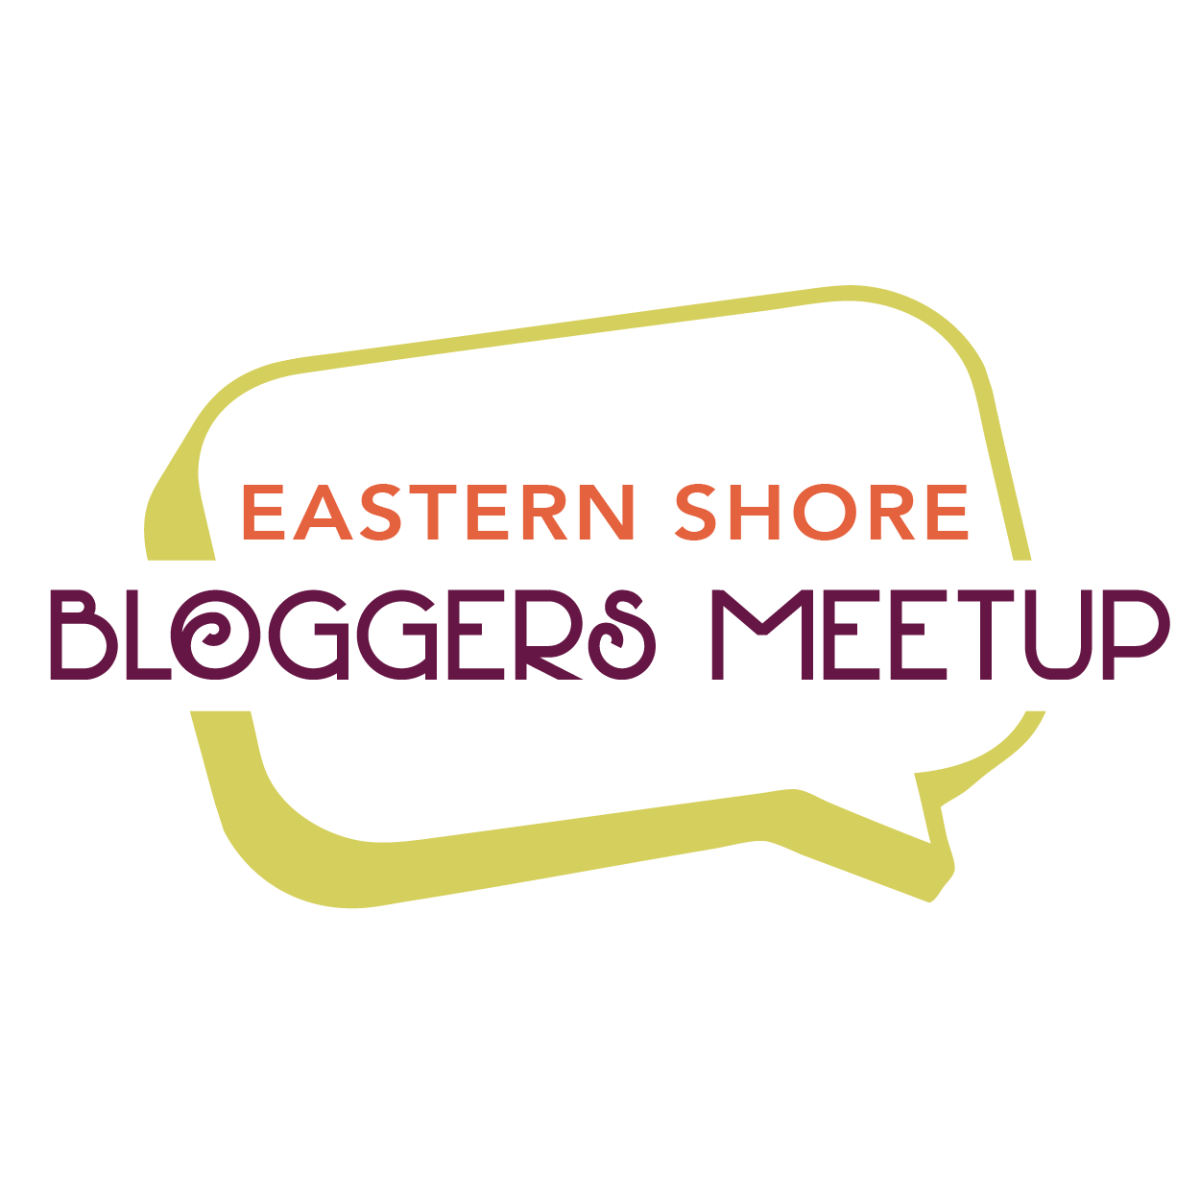 Eastern Shore Bloggers Meetup in Denton